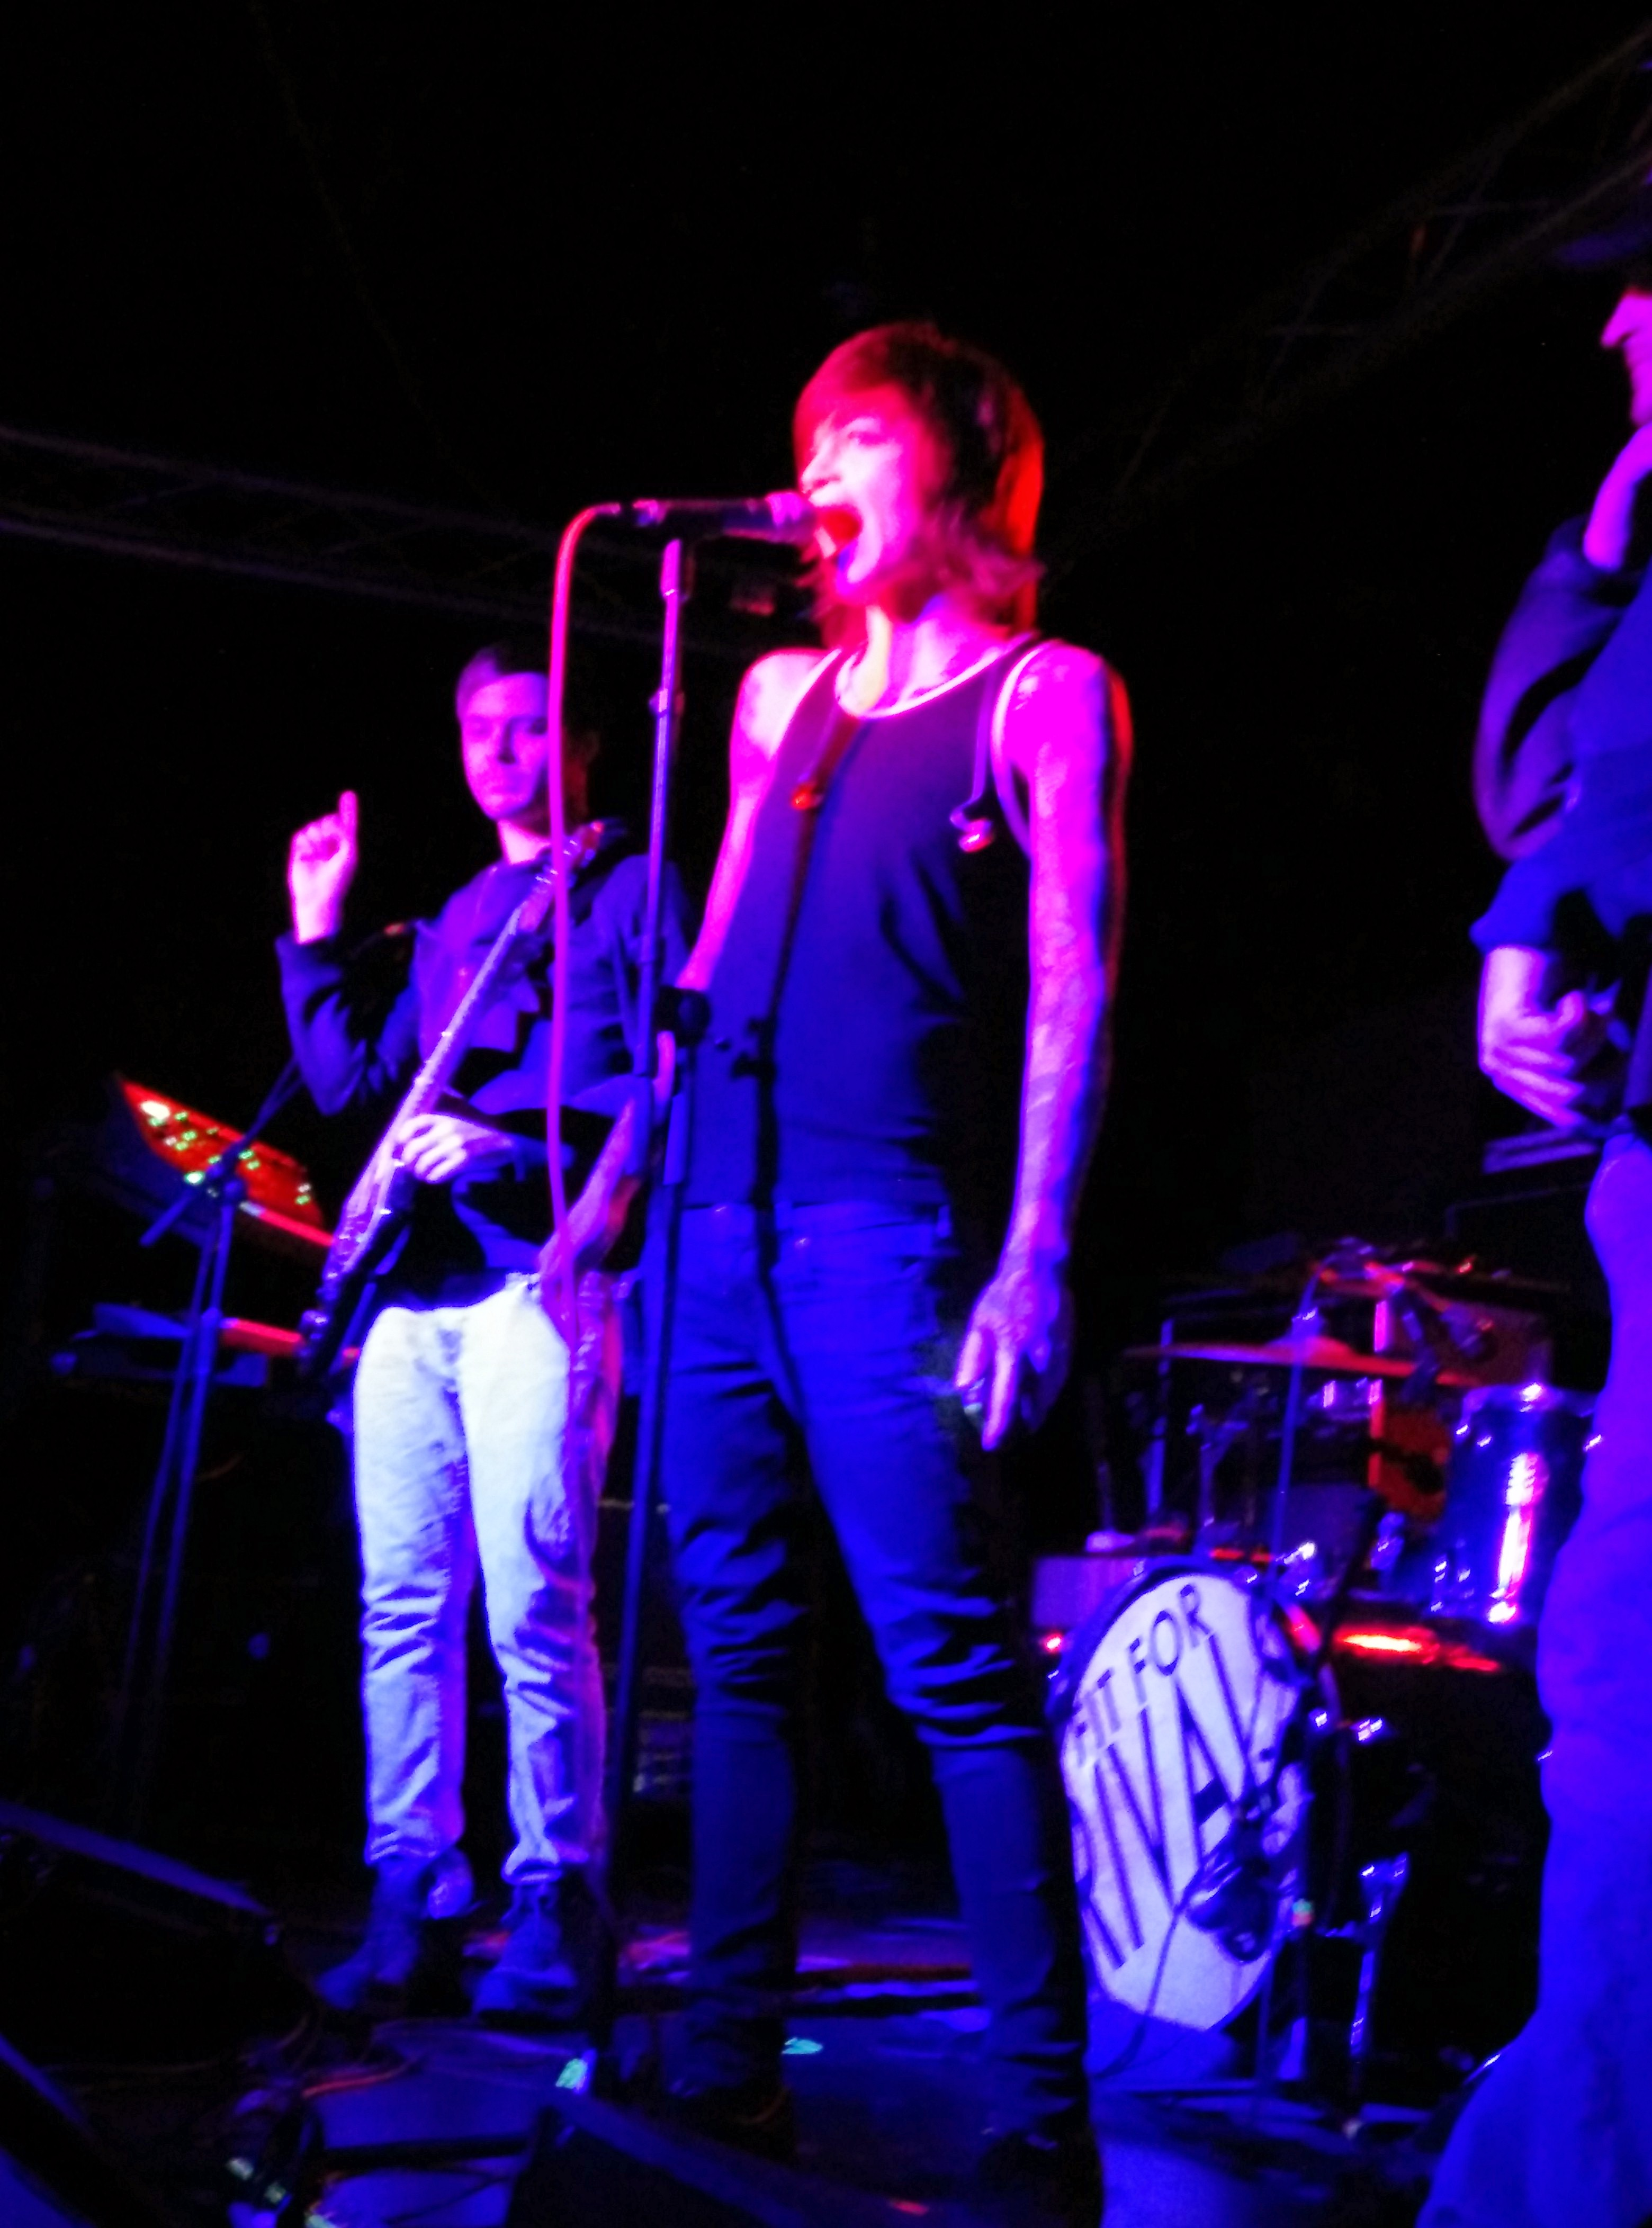 Fit For Rivals Impresses Salt Lake City With Real Rock N' Roll